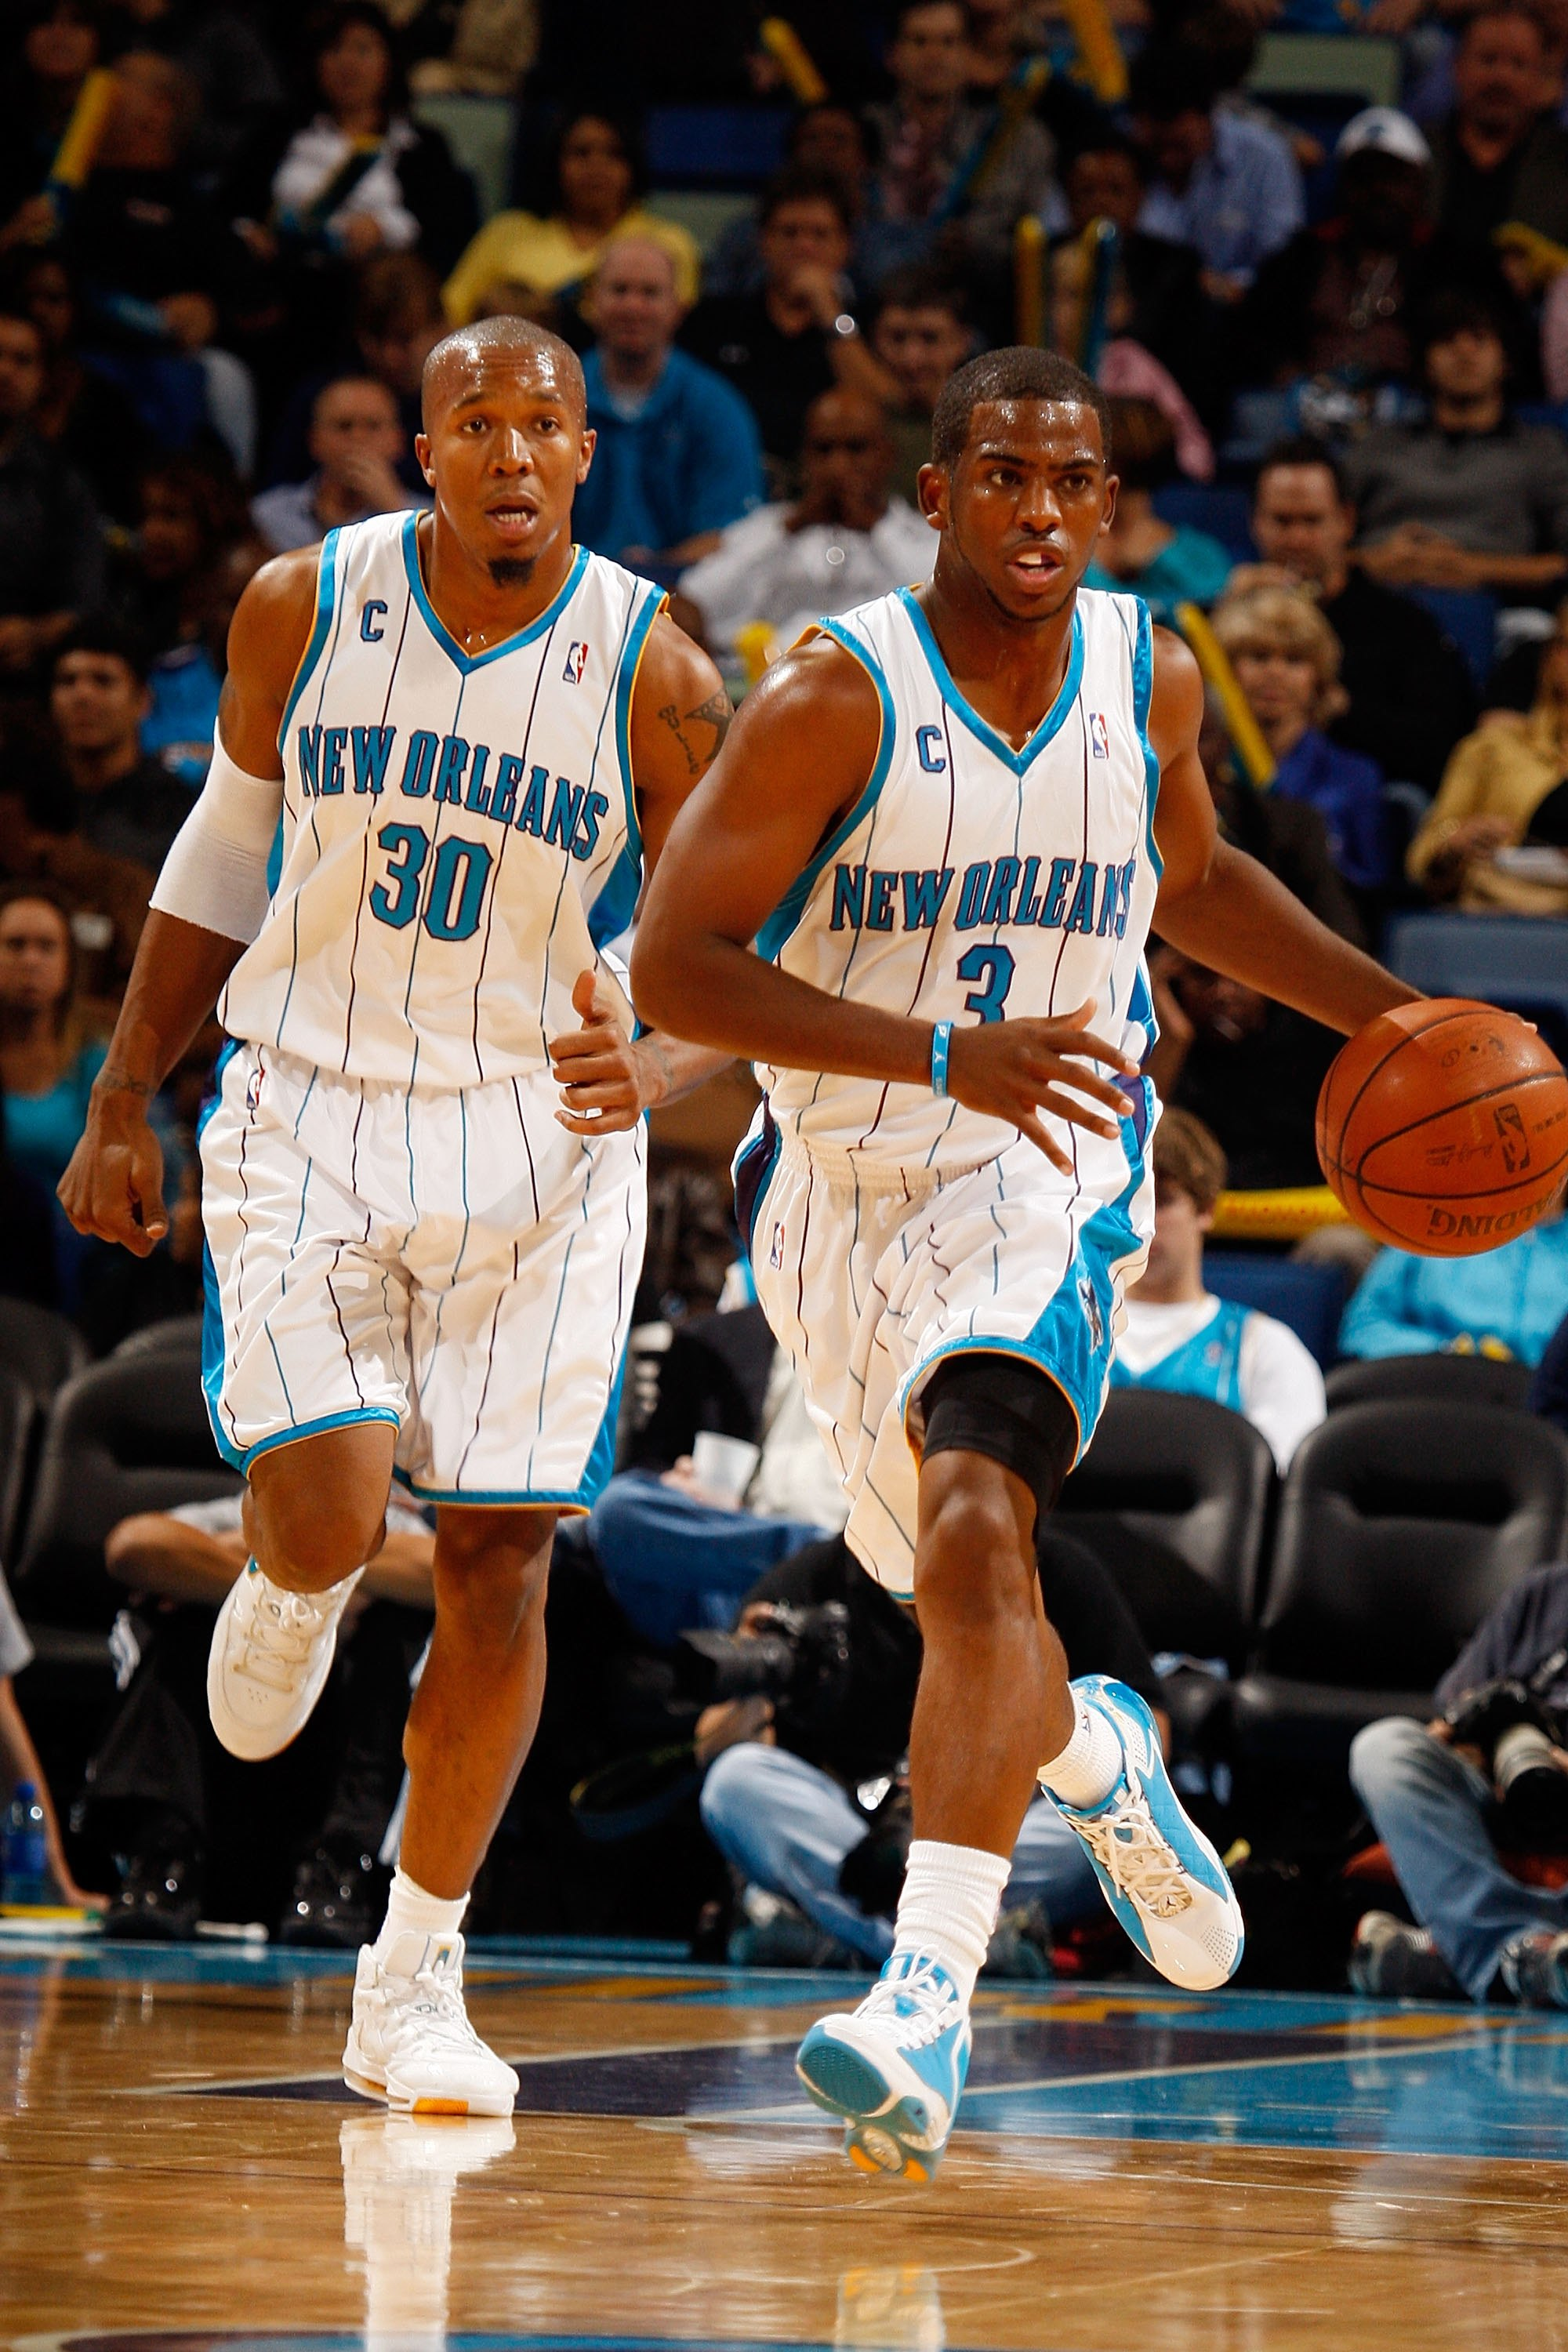 NEW ORLEANS - NOVEMBER 13:  David West #30 and Chris Paul #3 of the New Orleans Hornets is carried off the court after falling against the Portland Trail Blazers at the New Orleans Arena on November 13, 2009 in New Orleans, Louisiana.  NOTE TO USER: User